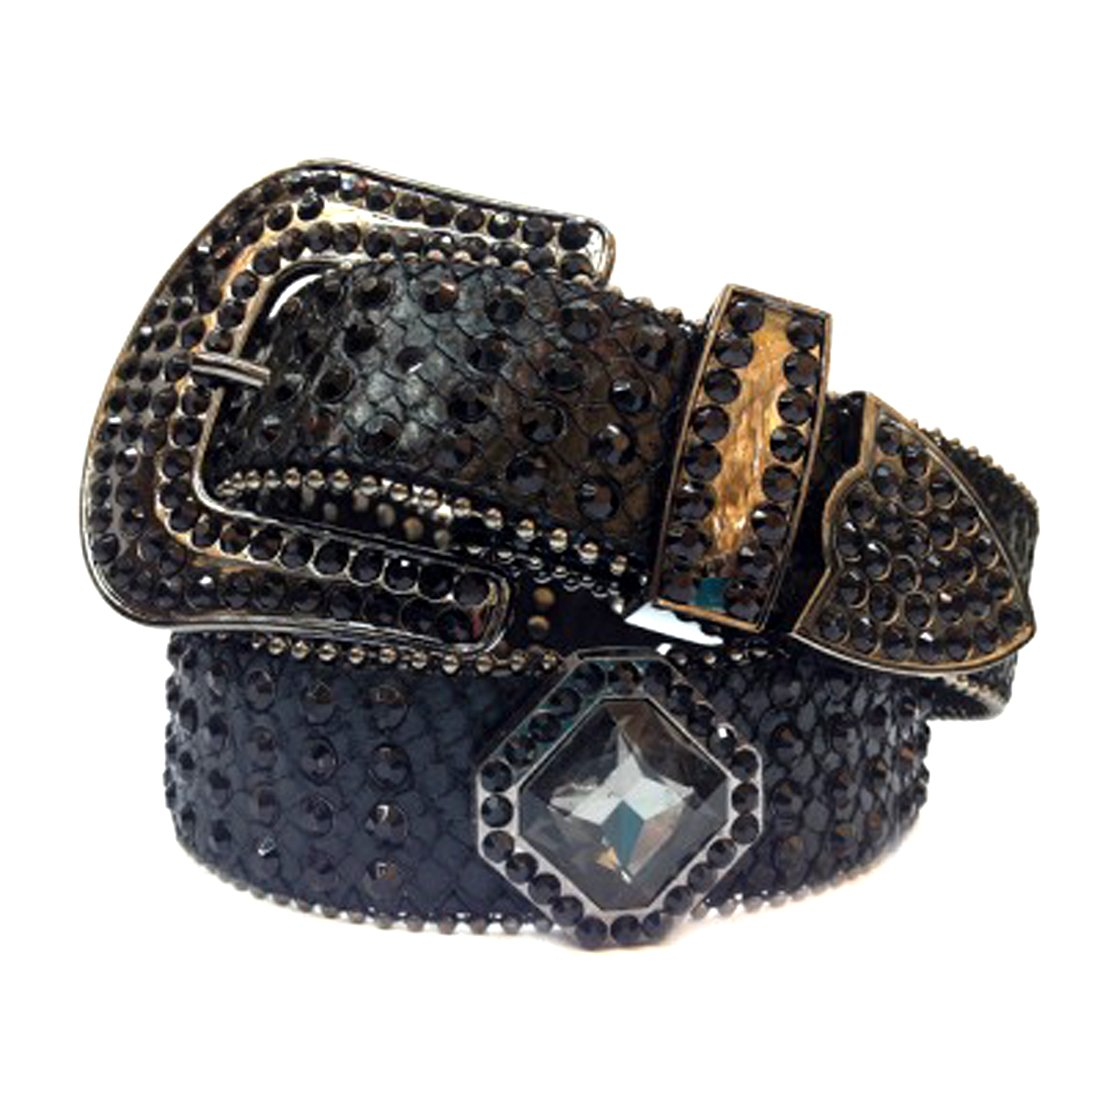 Black Leather Belt in a Crocodile Pattern Decorated in Black Crystals, Size S/M